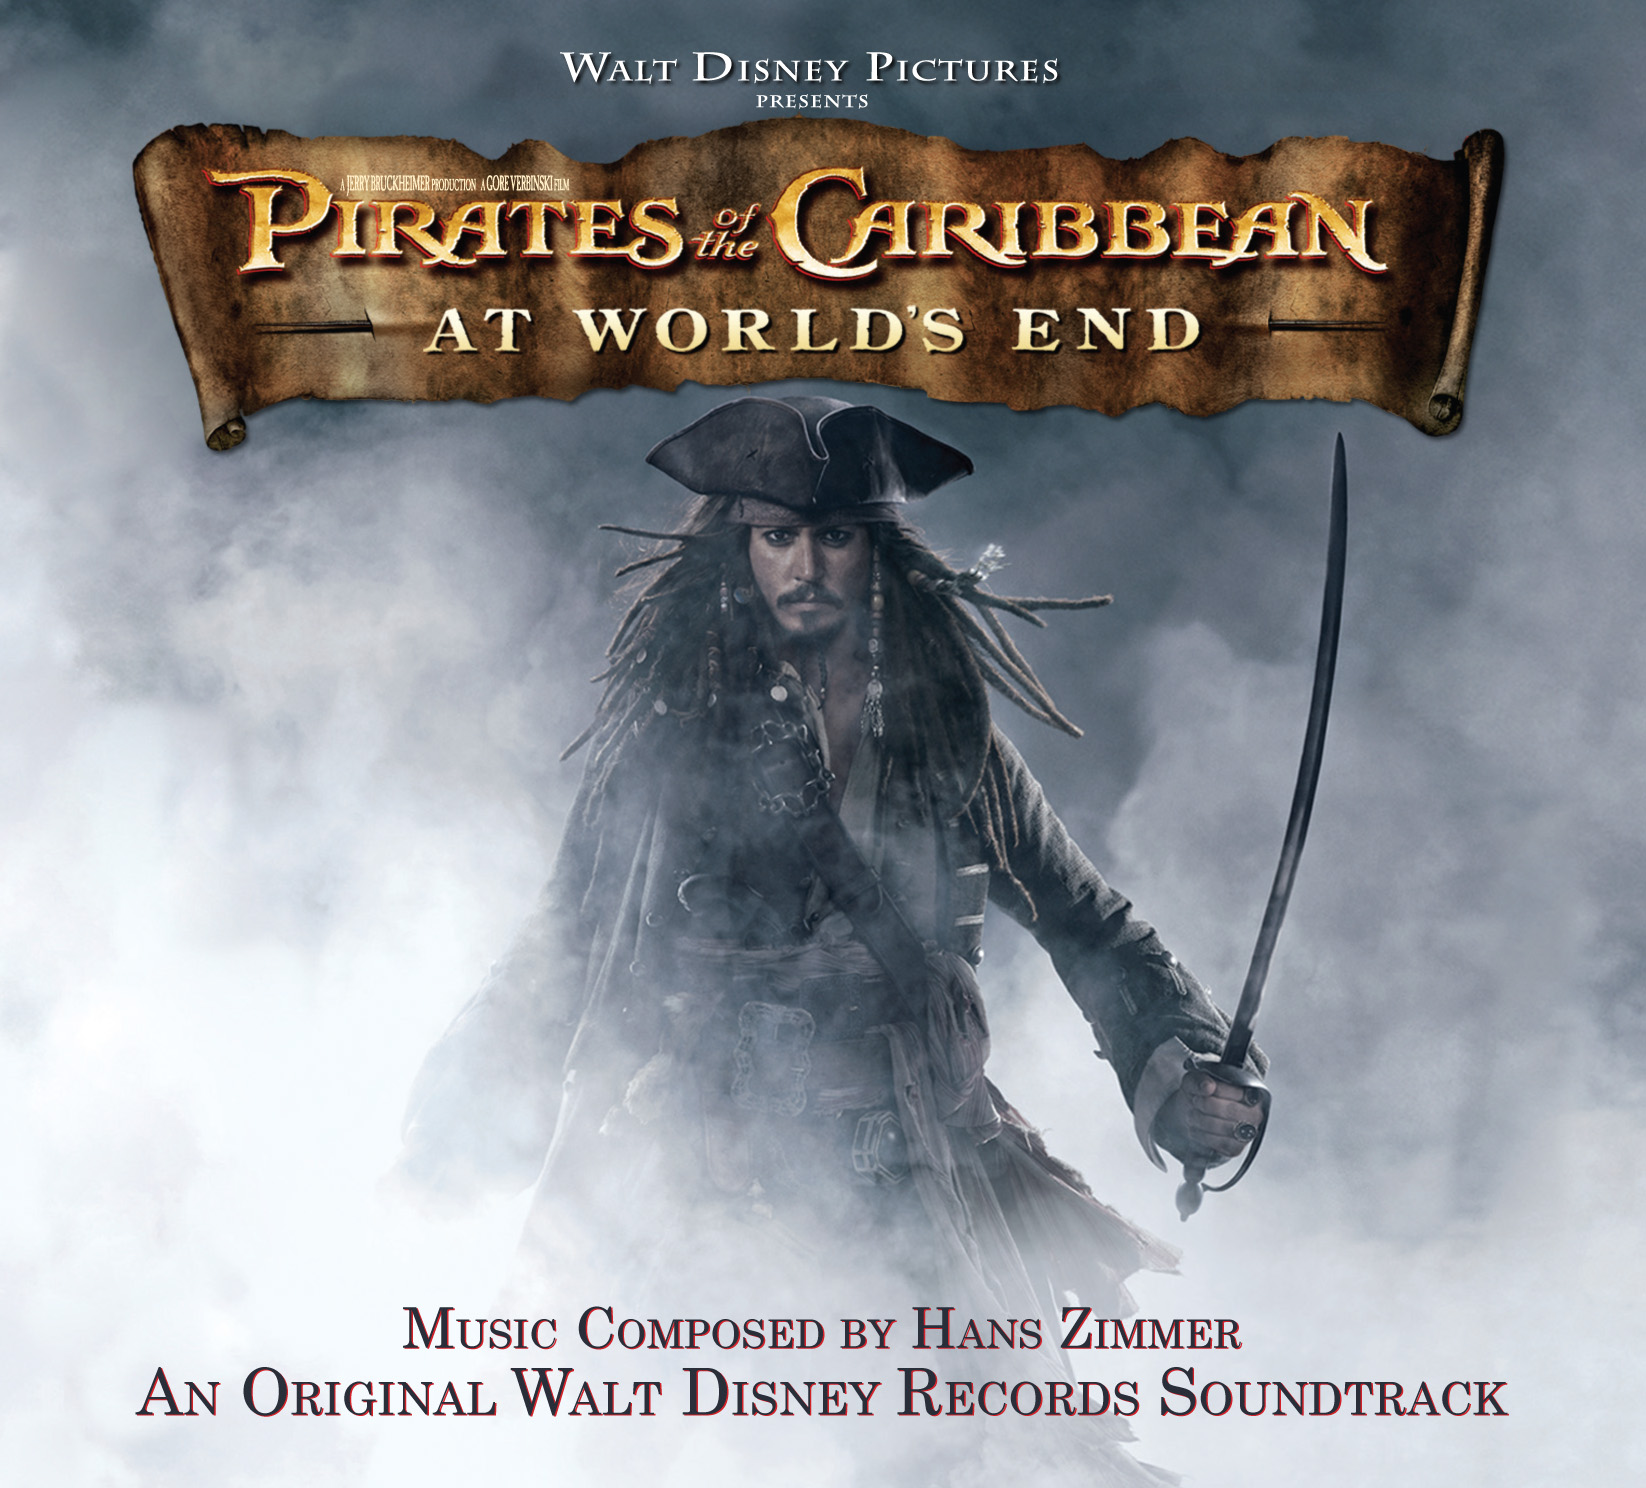 Pirates of Caribbean: At the worlds end